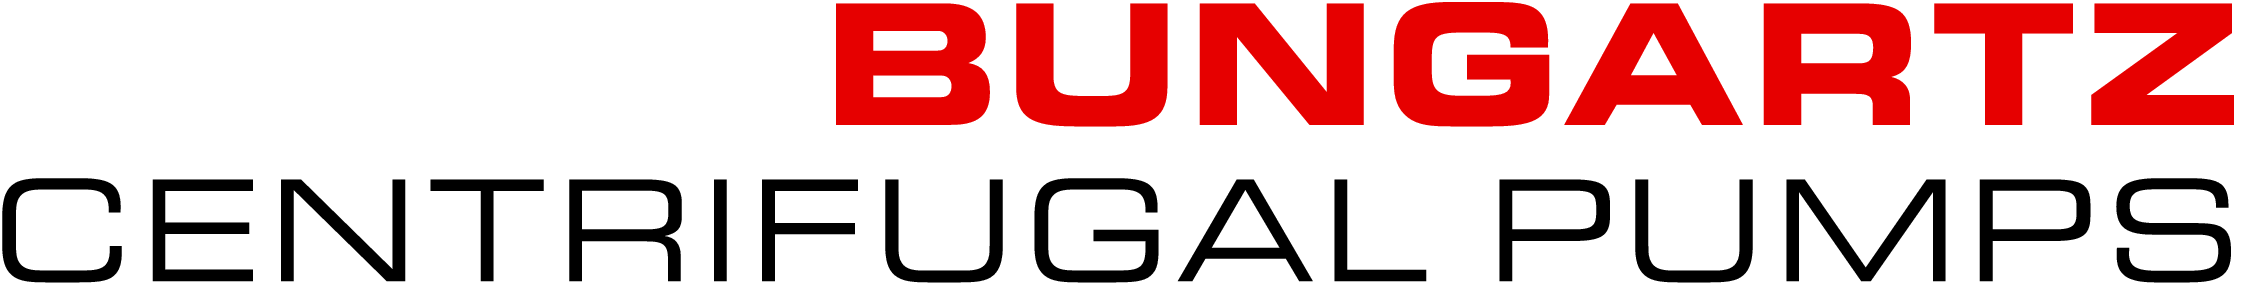 Paul Bungartz GmbH & Co. KG